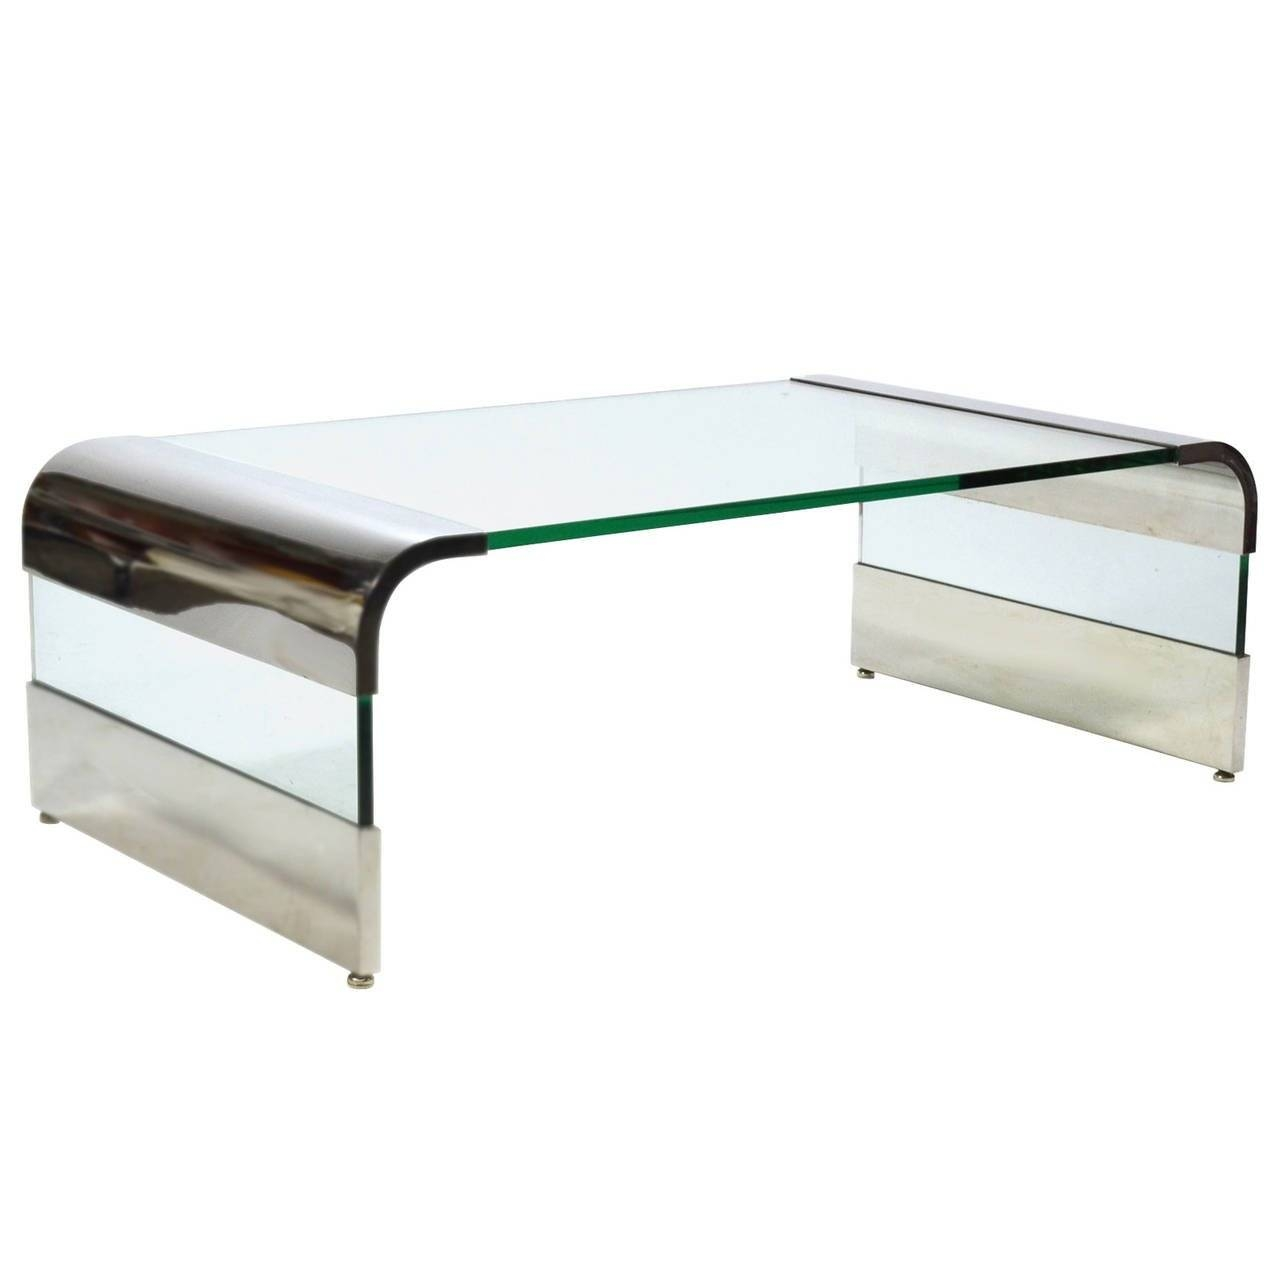 Leon Rosen Chrome And Glass Waterfall Coffee Tablepace For with Glass And Chrome Coffee Tables (Image 18 of 30)